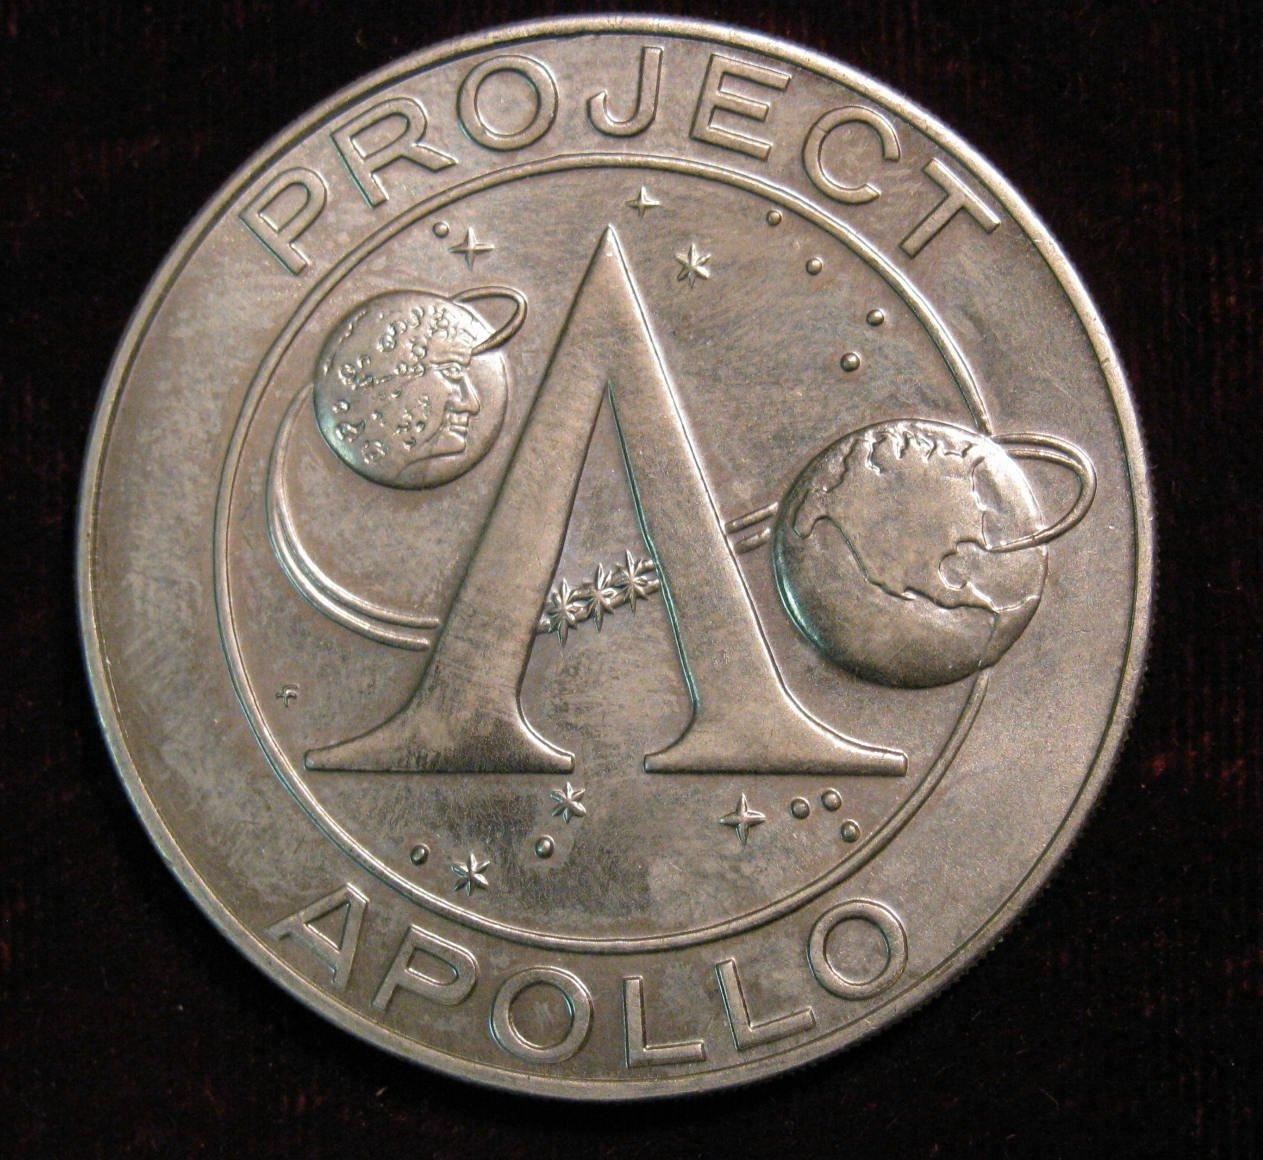 Apollo Project Apollo Coins Seven (page 2) - Pics about space